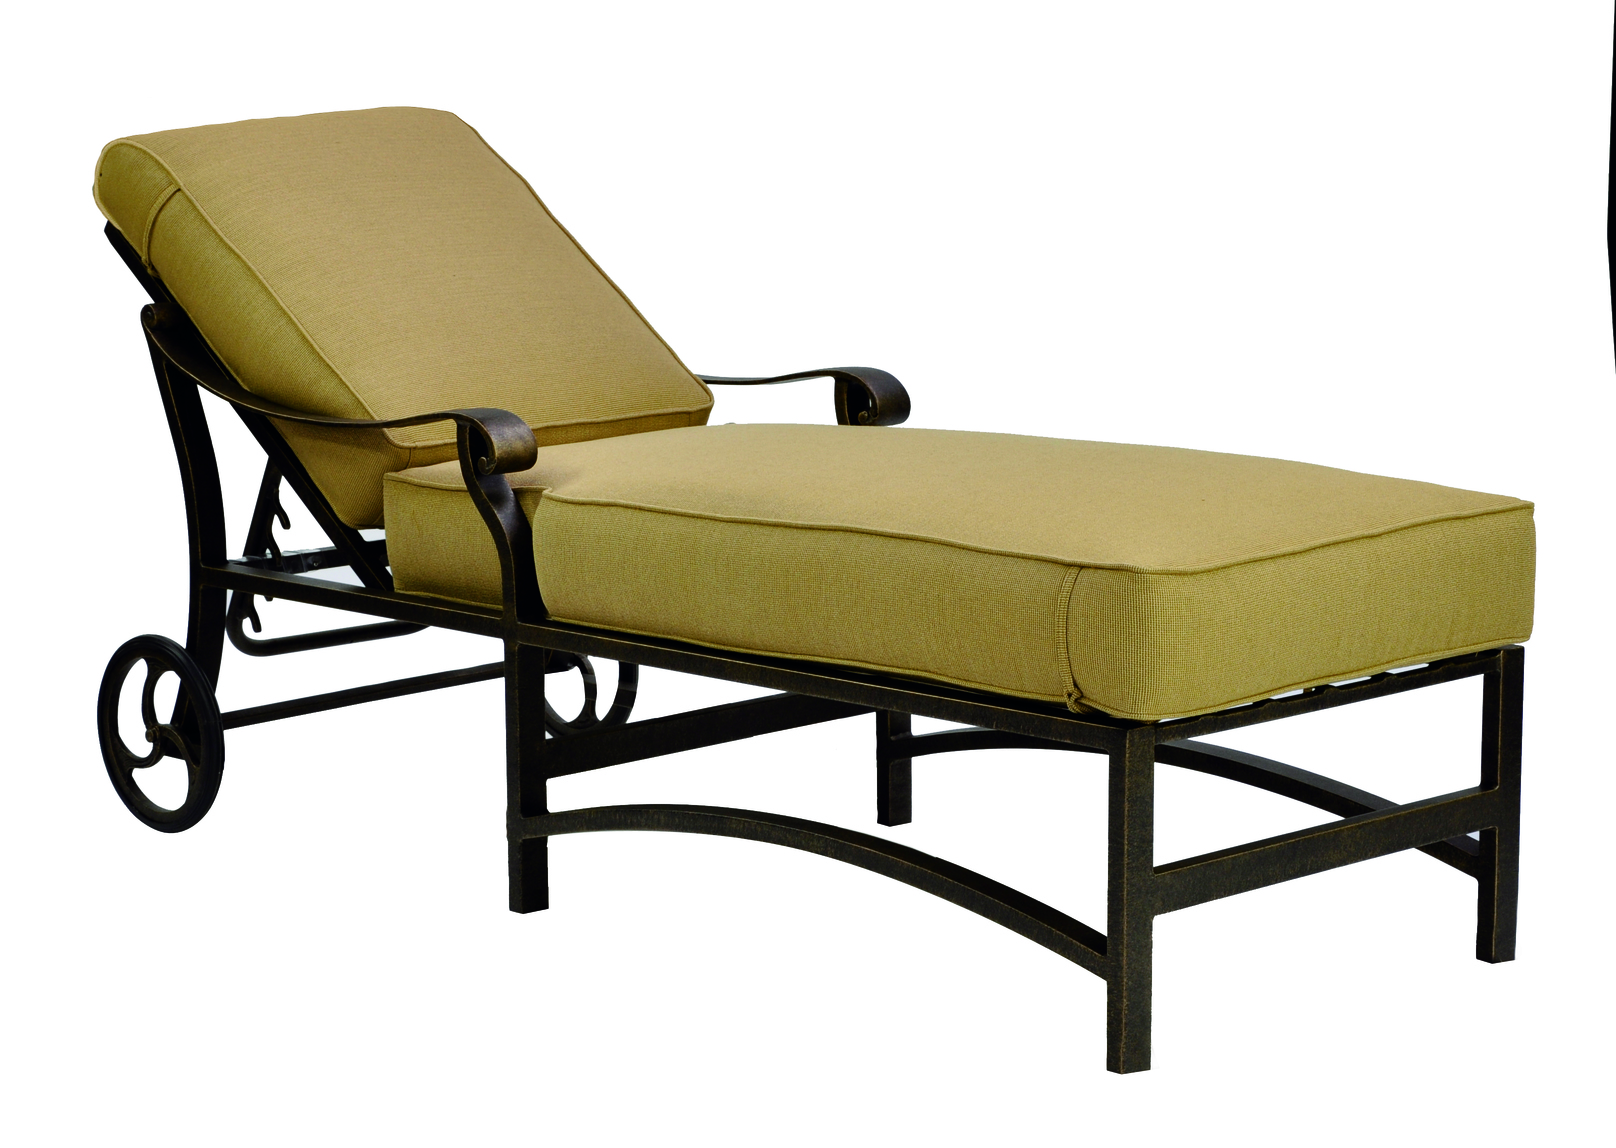 Madrid Cushion Adjustable Chaise Lounge W Wheels Hauser